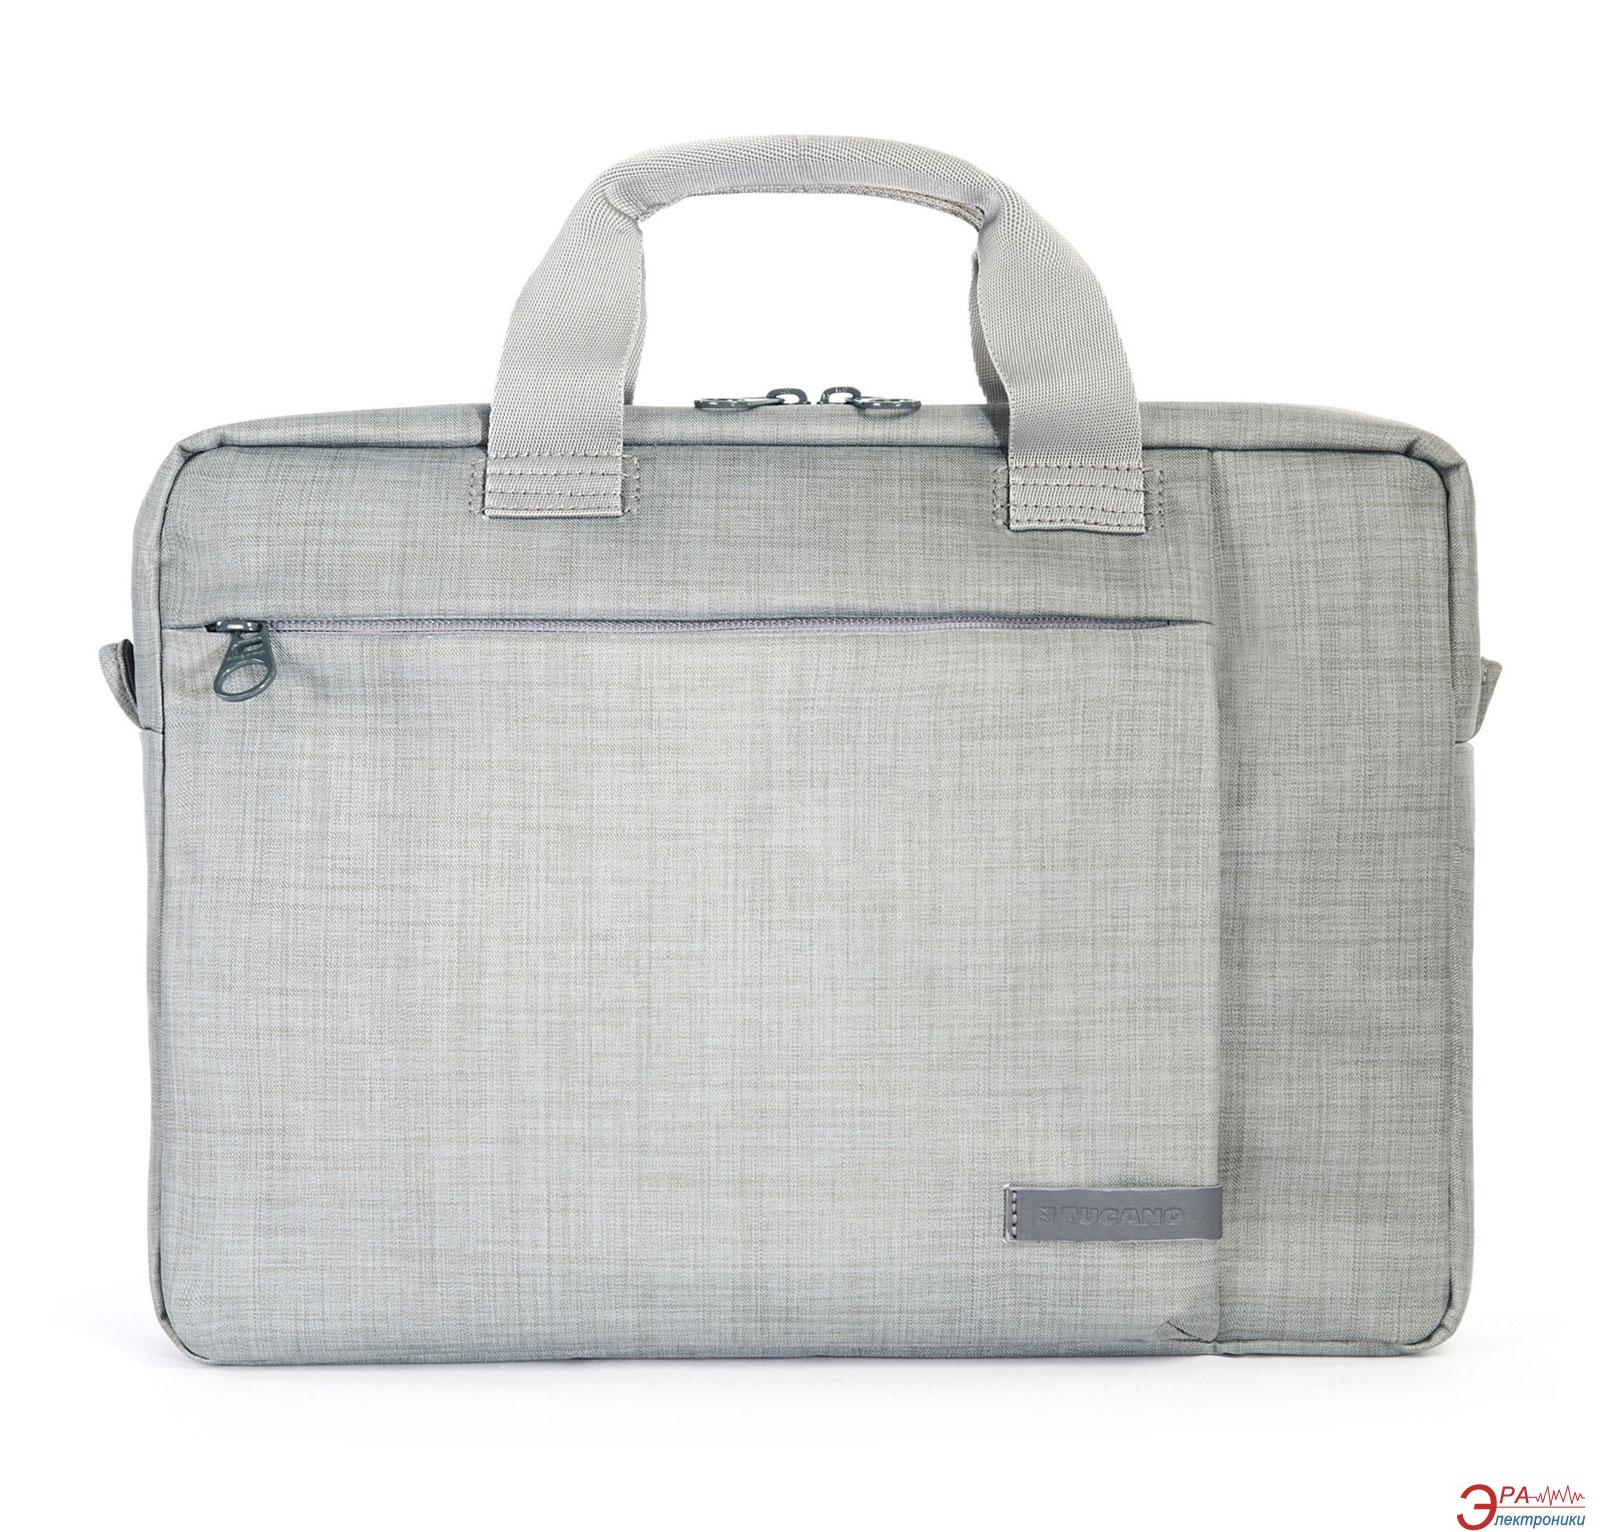 Сумка для ноутбука Tucano SVOLTA SLIM BAG PC 11.6''/12.5'' GREY (BSVO1112-G)